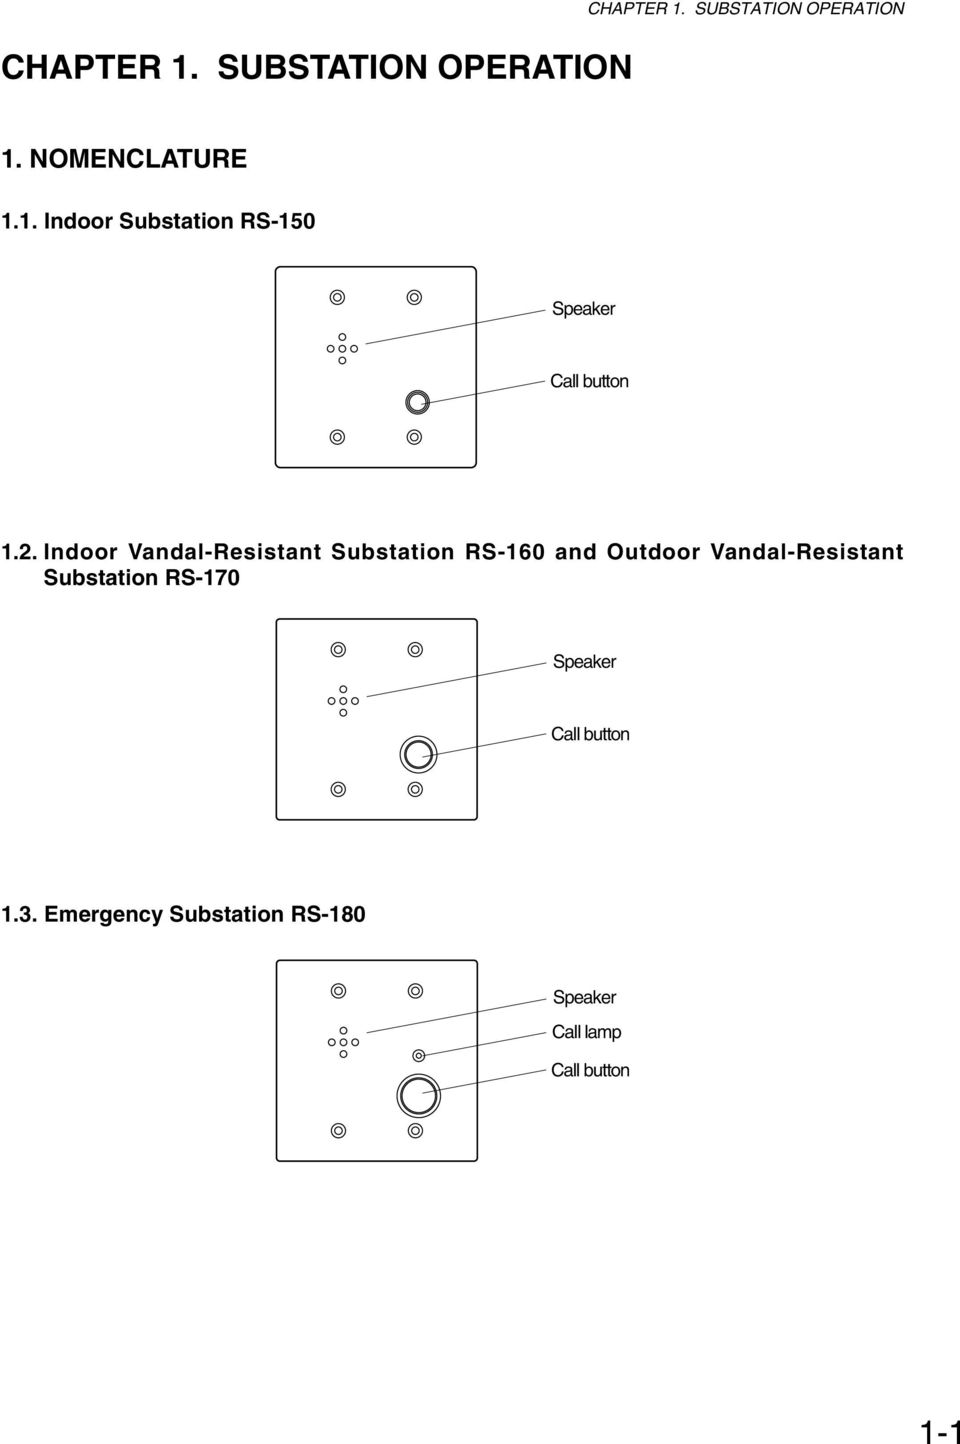 Indoor Vandal-Resistant Substation RS-160 and Outdoor Vandal-Resistant